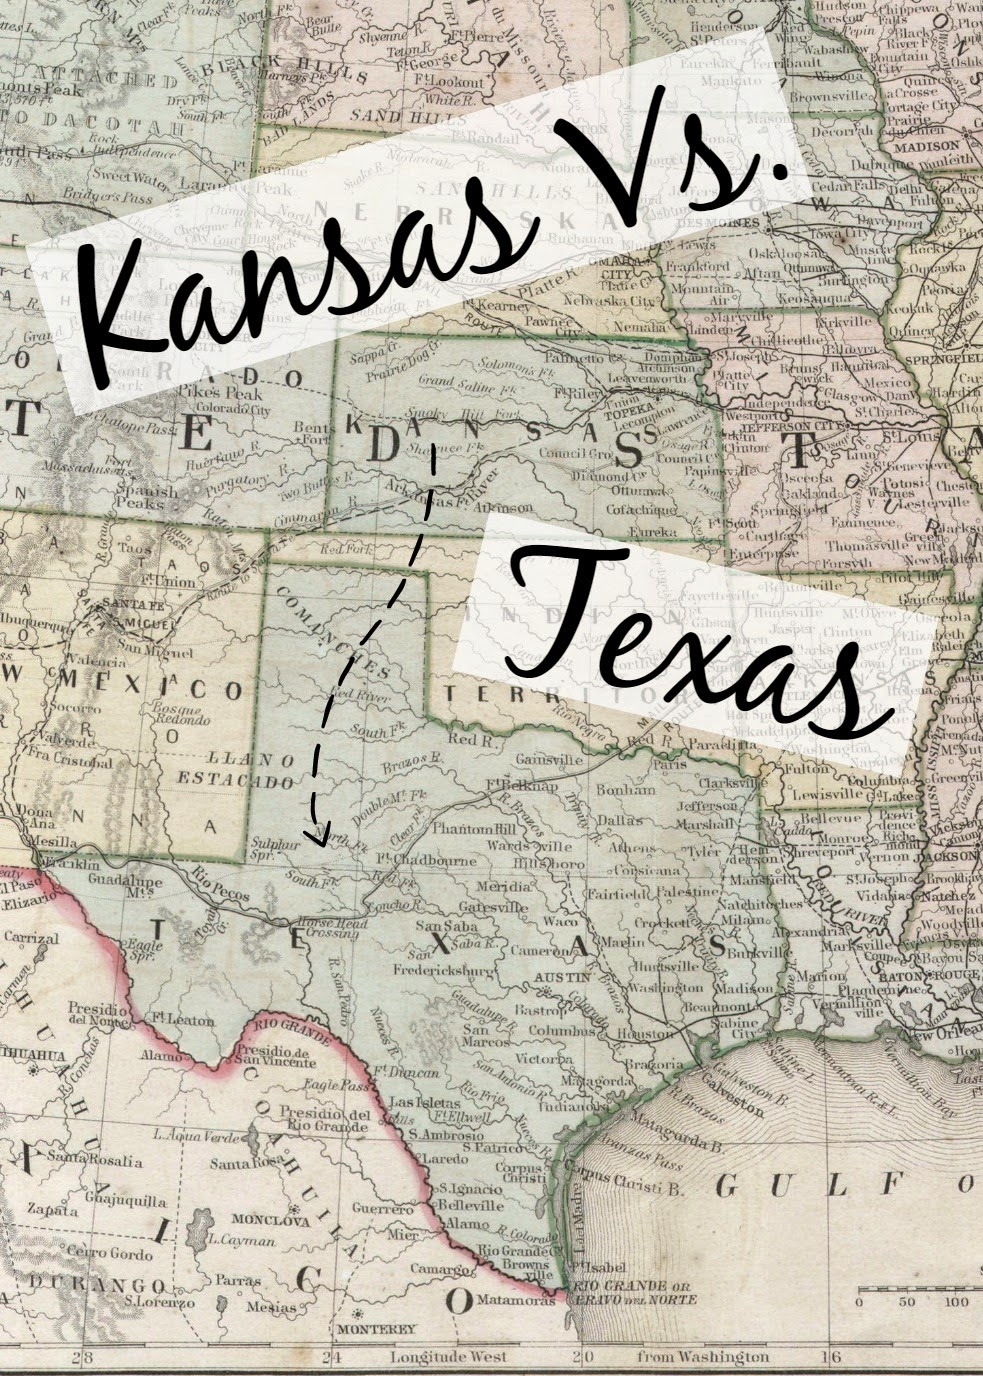 Kansas vs. Texas - Seekingthesouthblog.blogspot.com